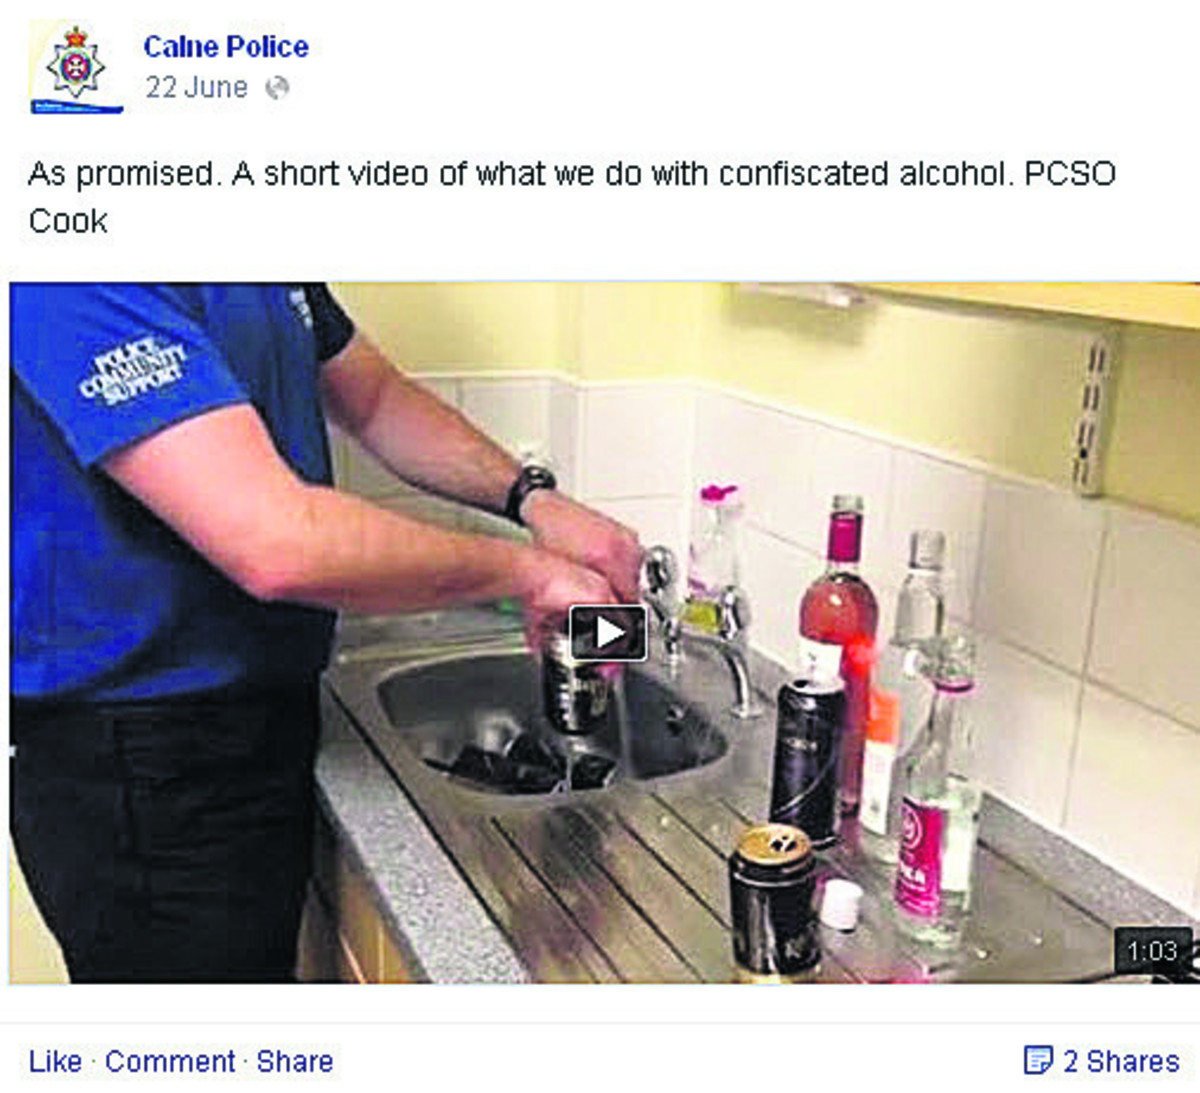 Calne PCSO Mark Cook pours away the confiscated alcohol